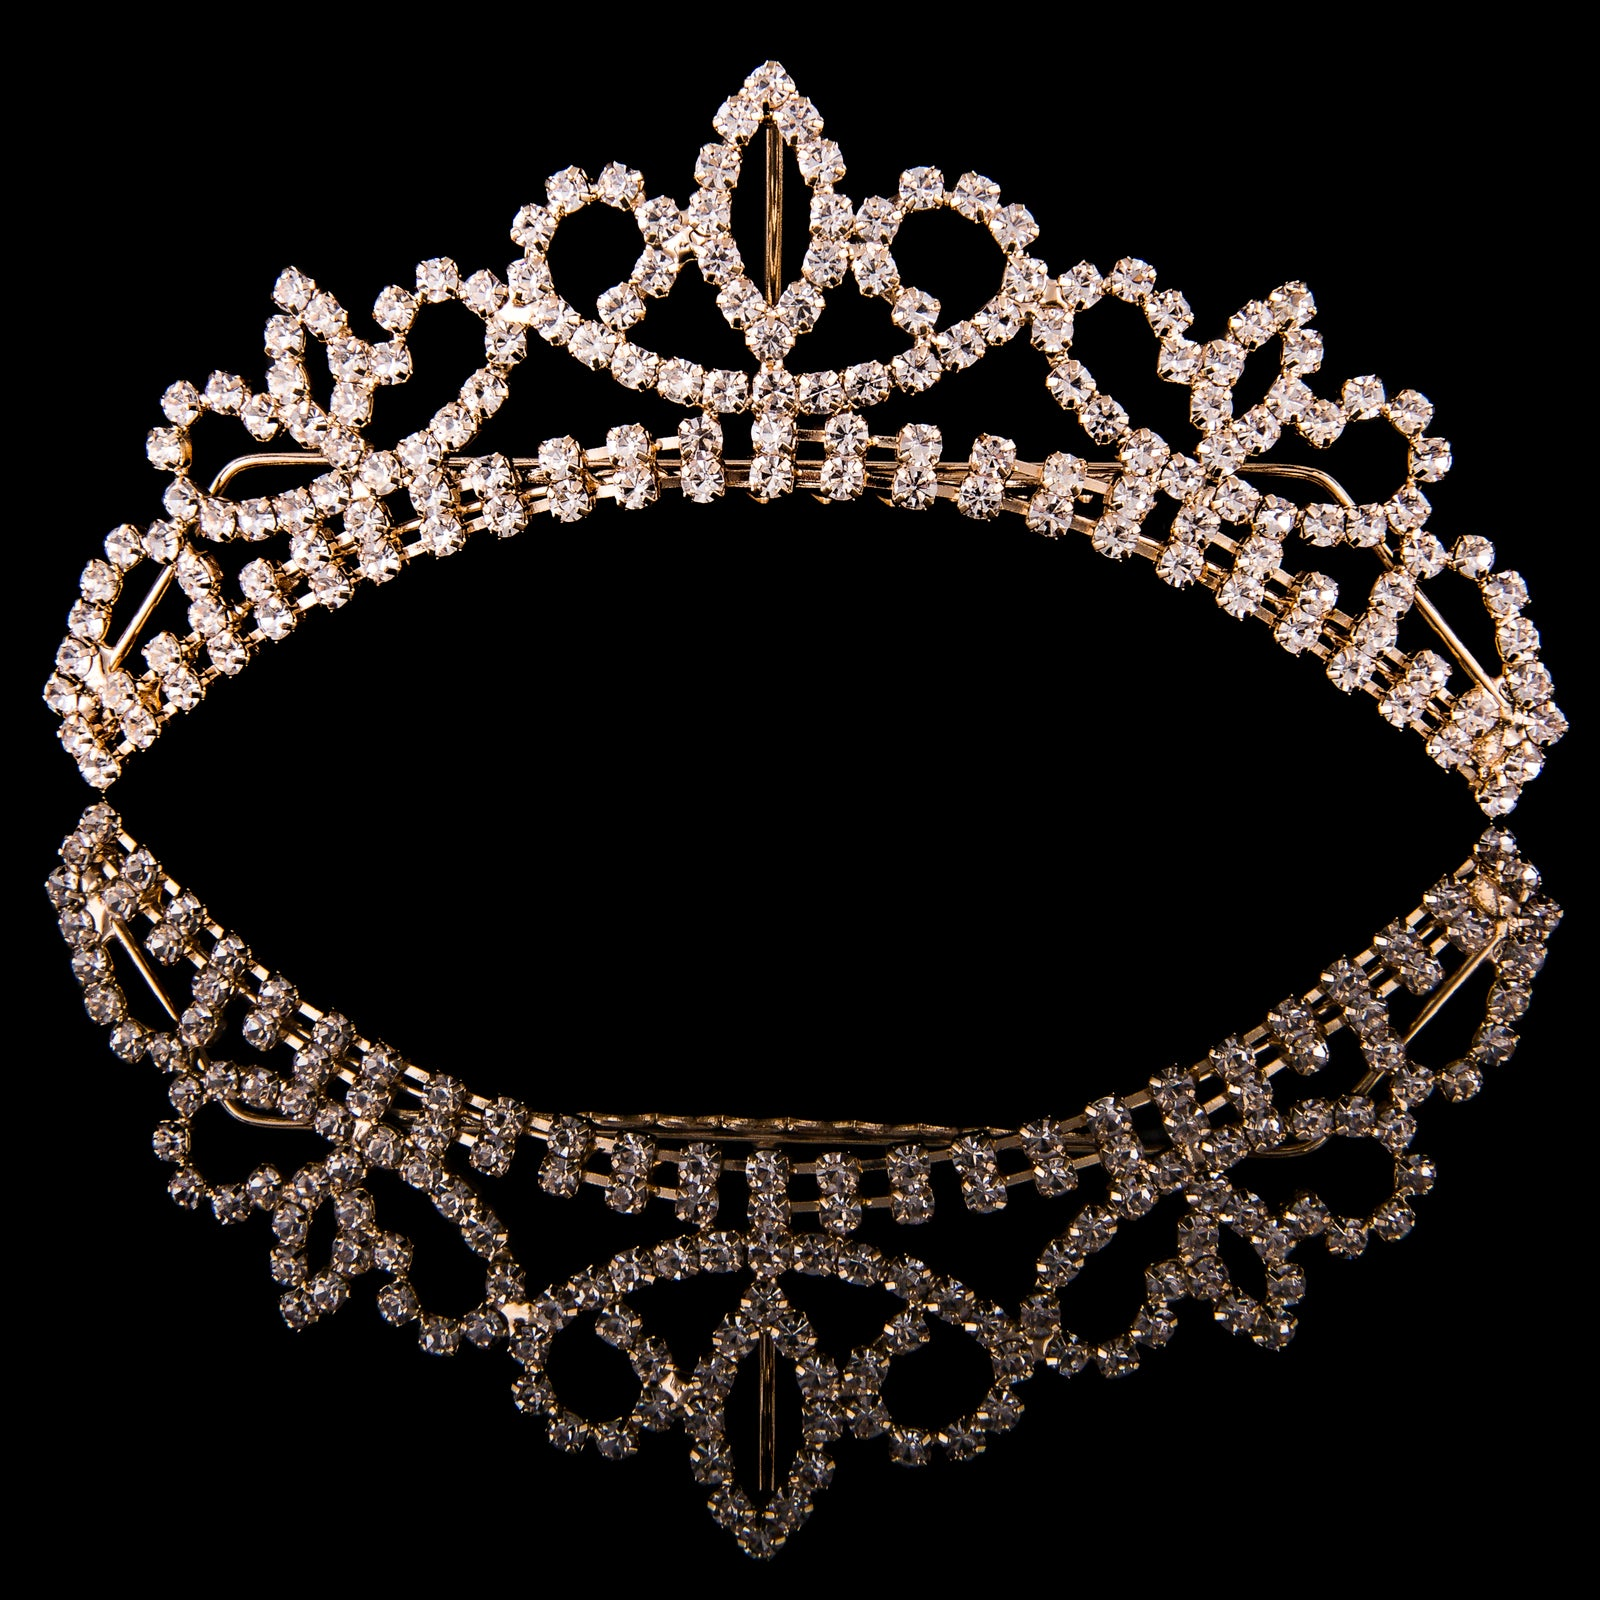 MAD ALLY MEDIUM CRYSTAL TIARA H40390